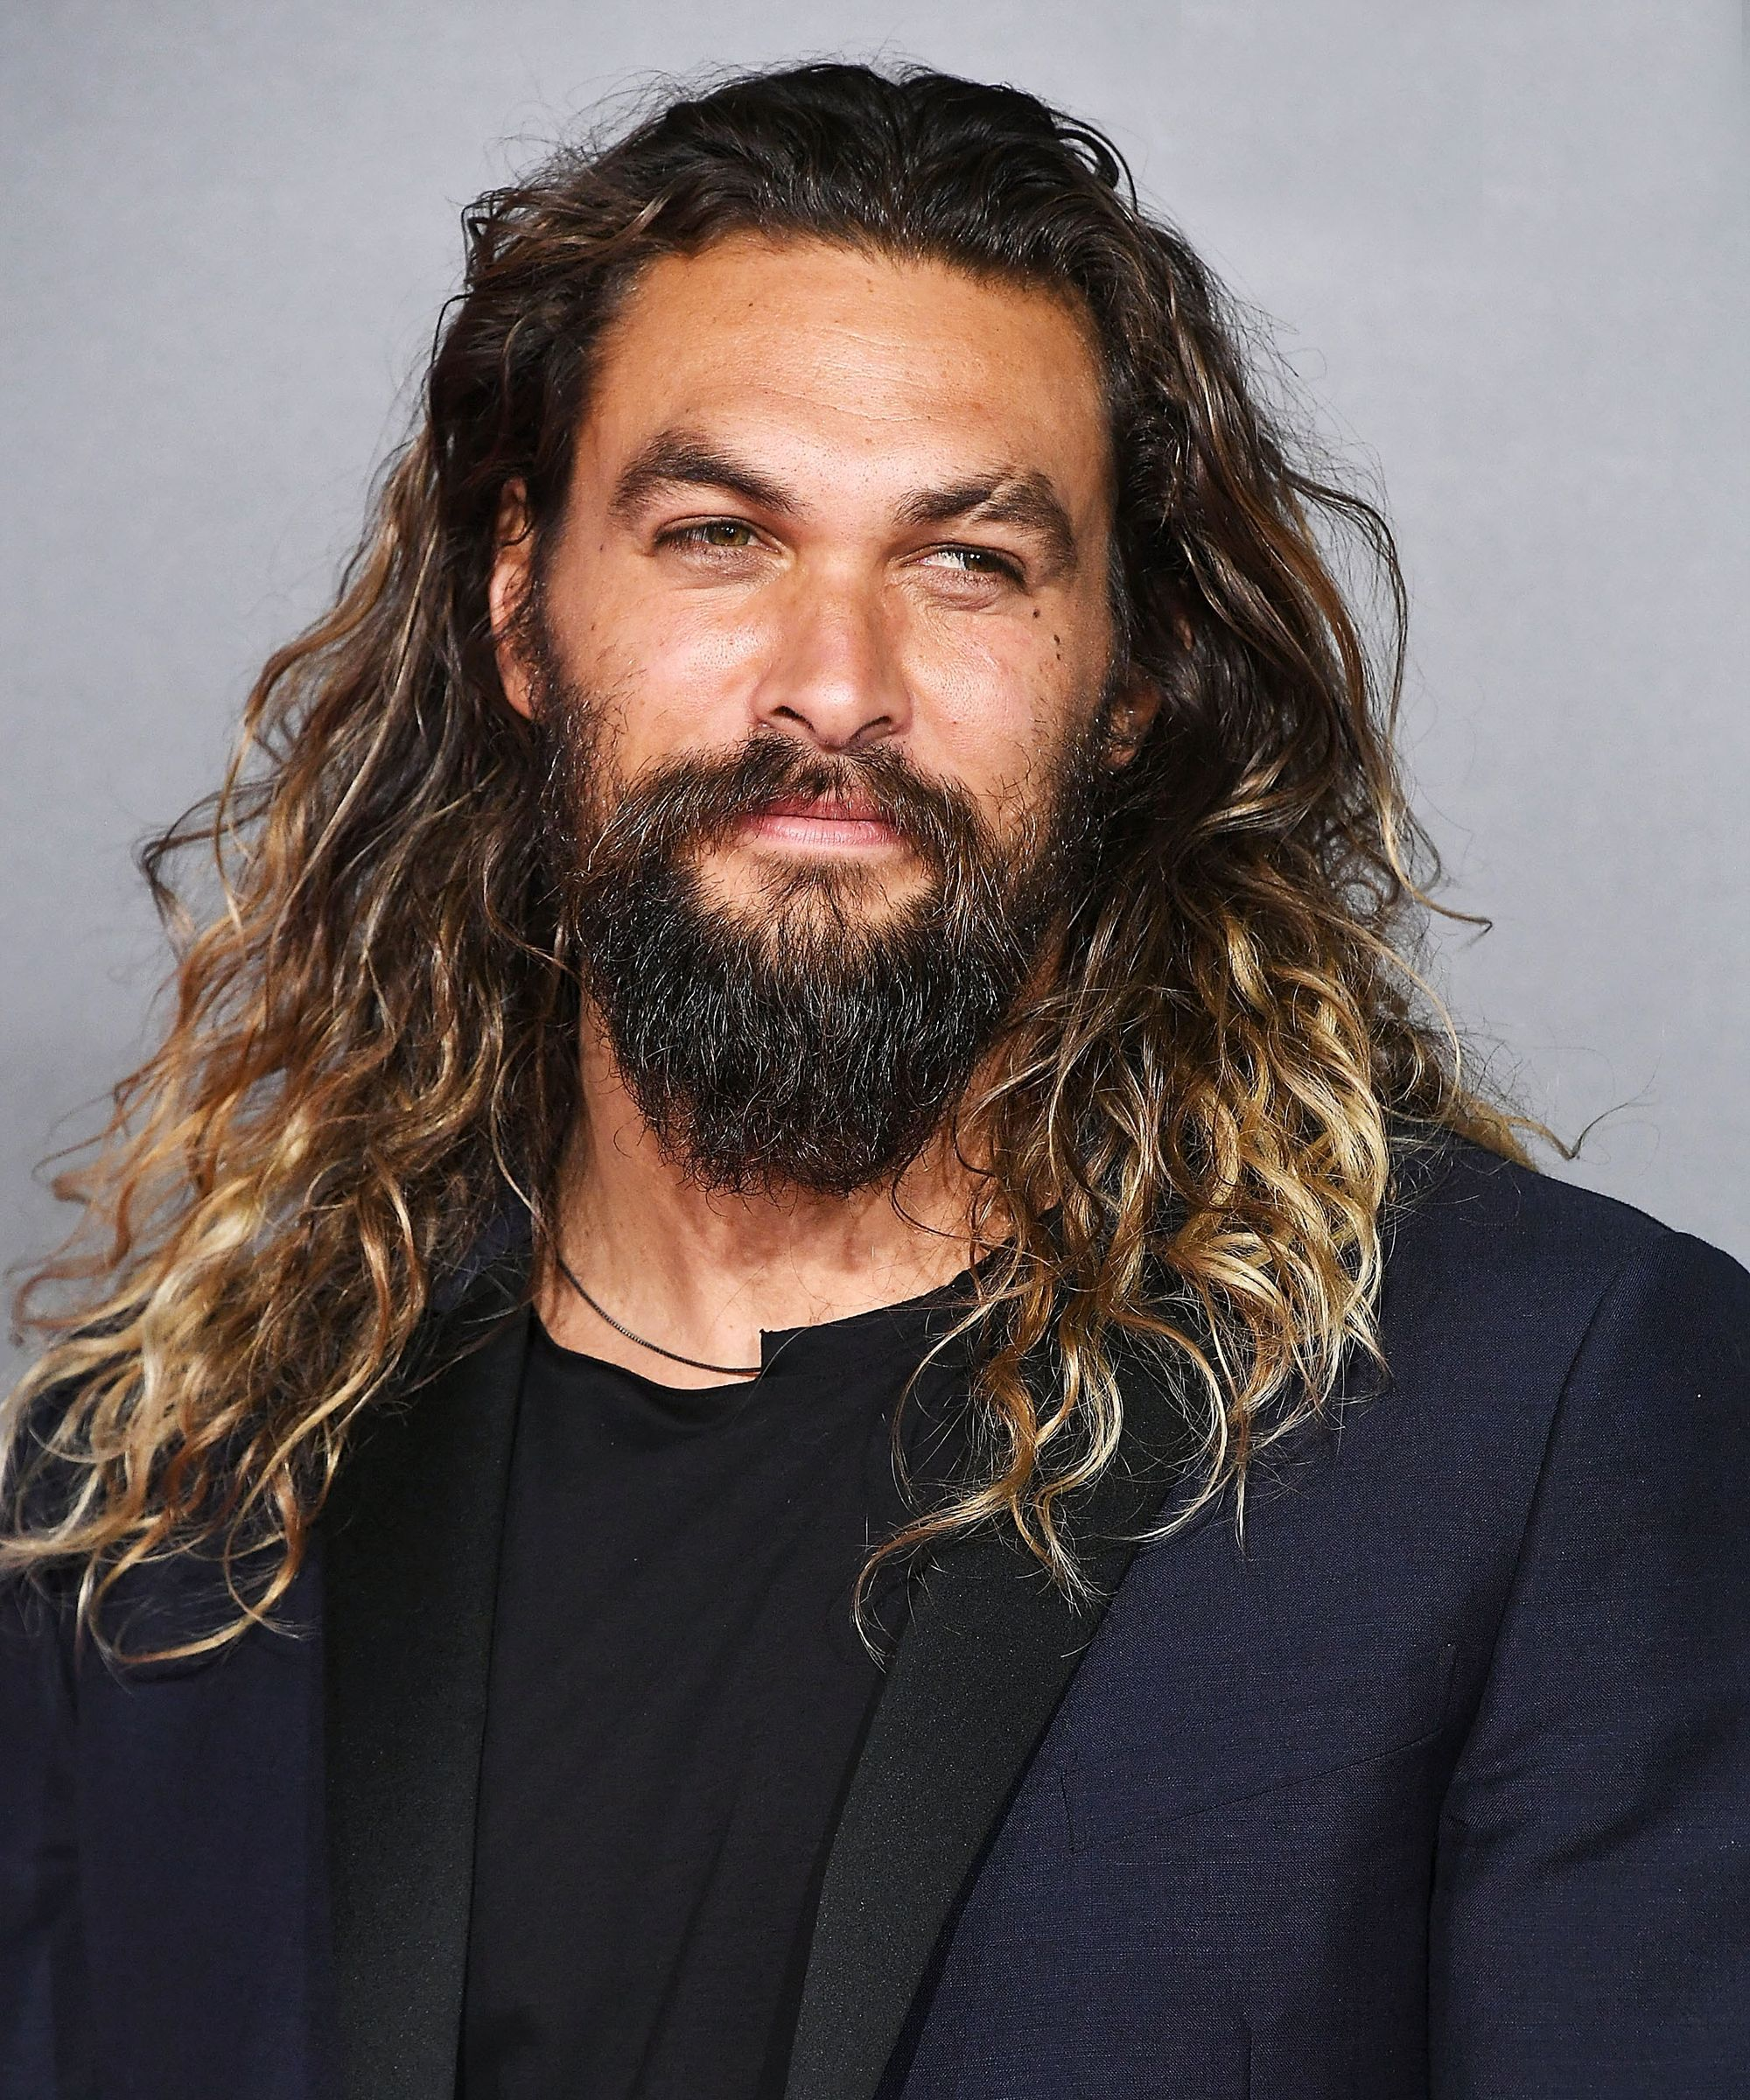 ¿Cuánto mide Jason Momoa? - Altura - Real height 3b9bfc2747b115dc50ae9c0023bb32c3